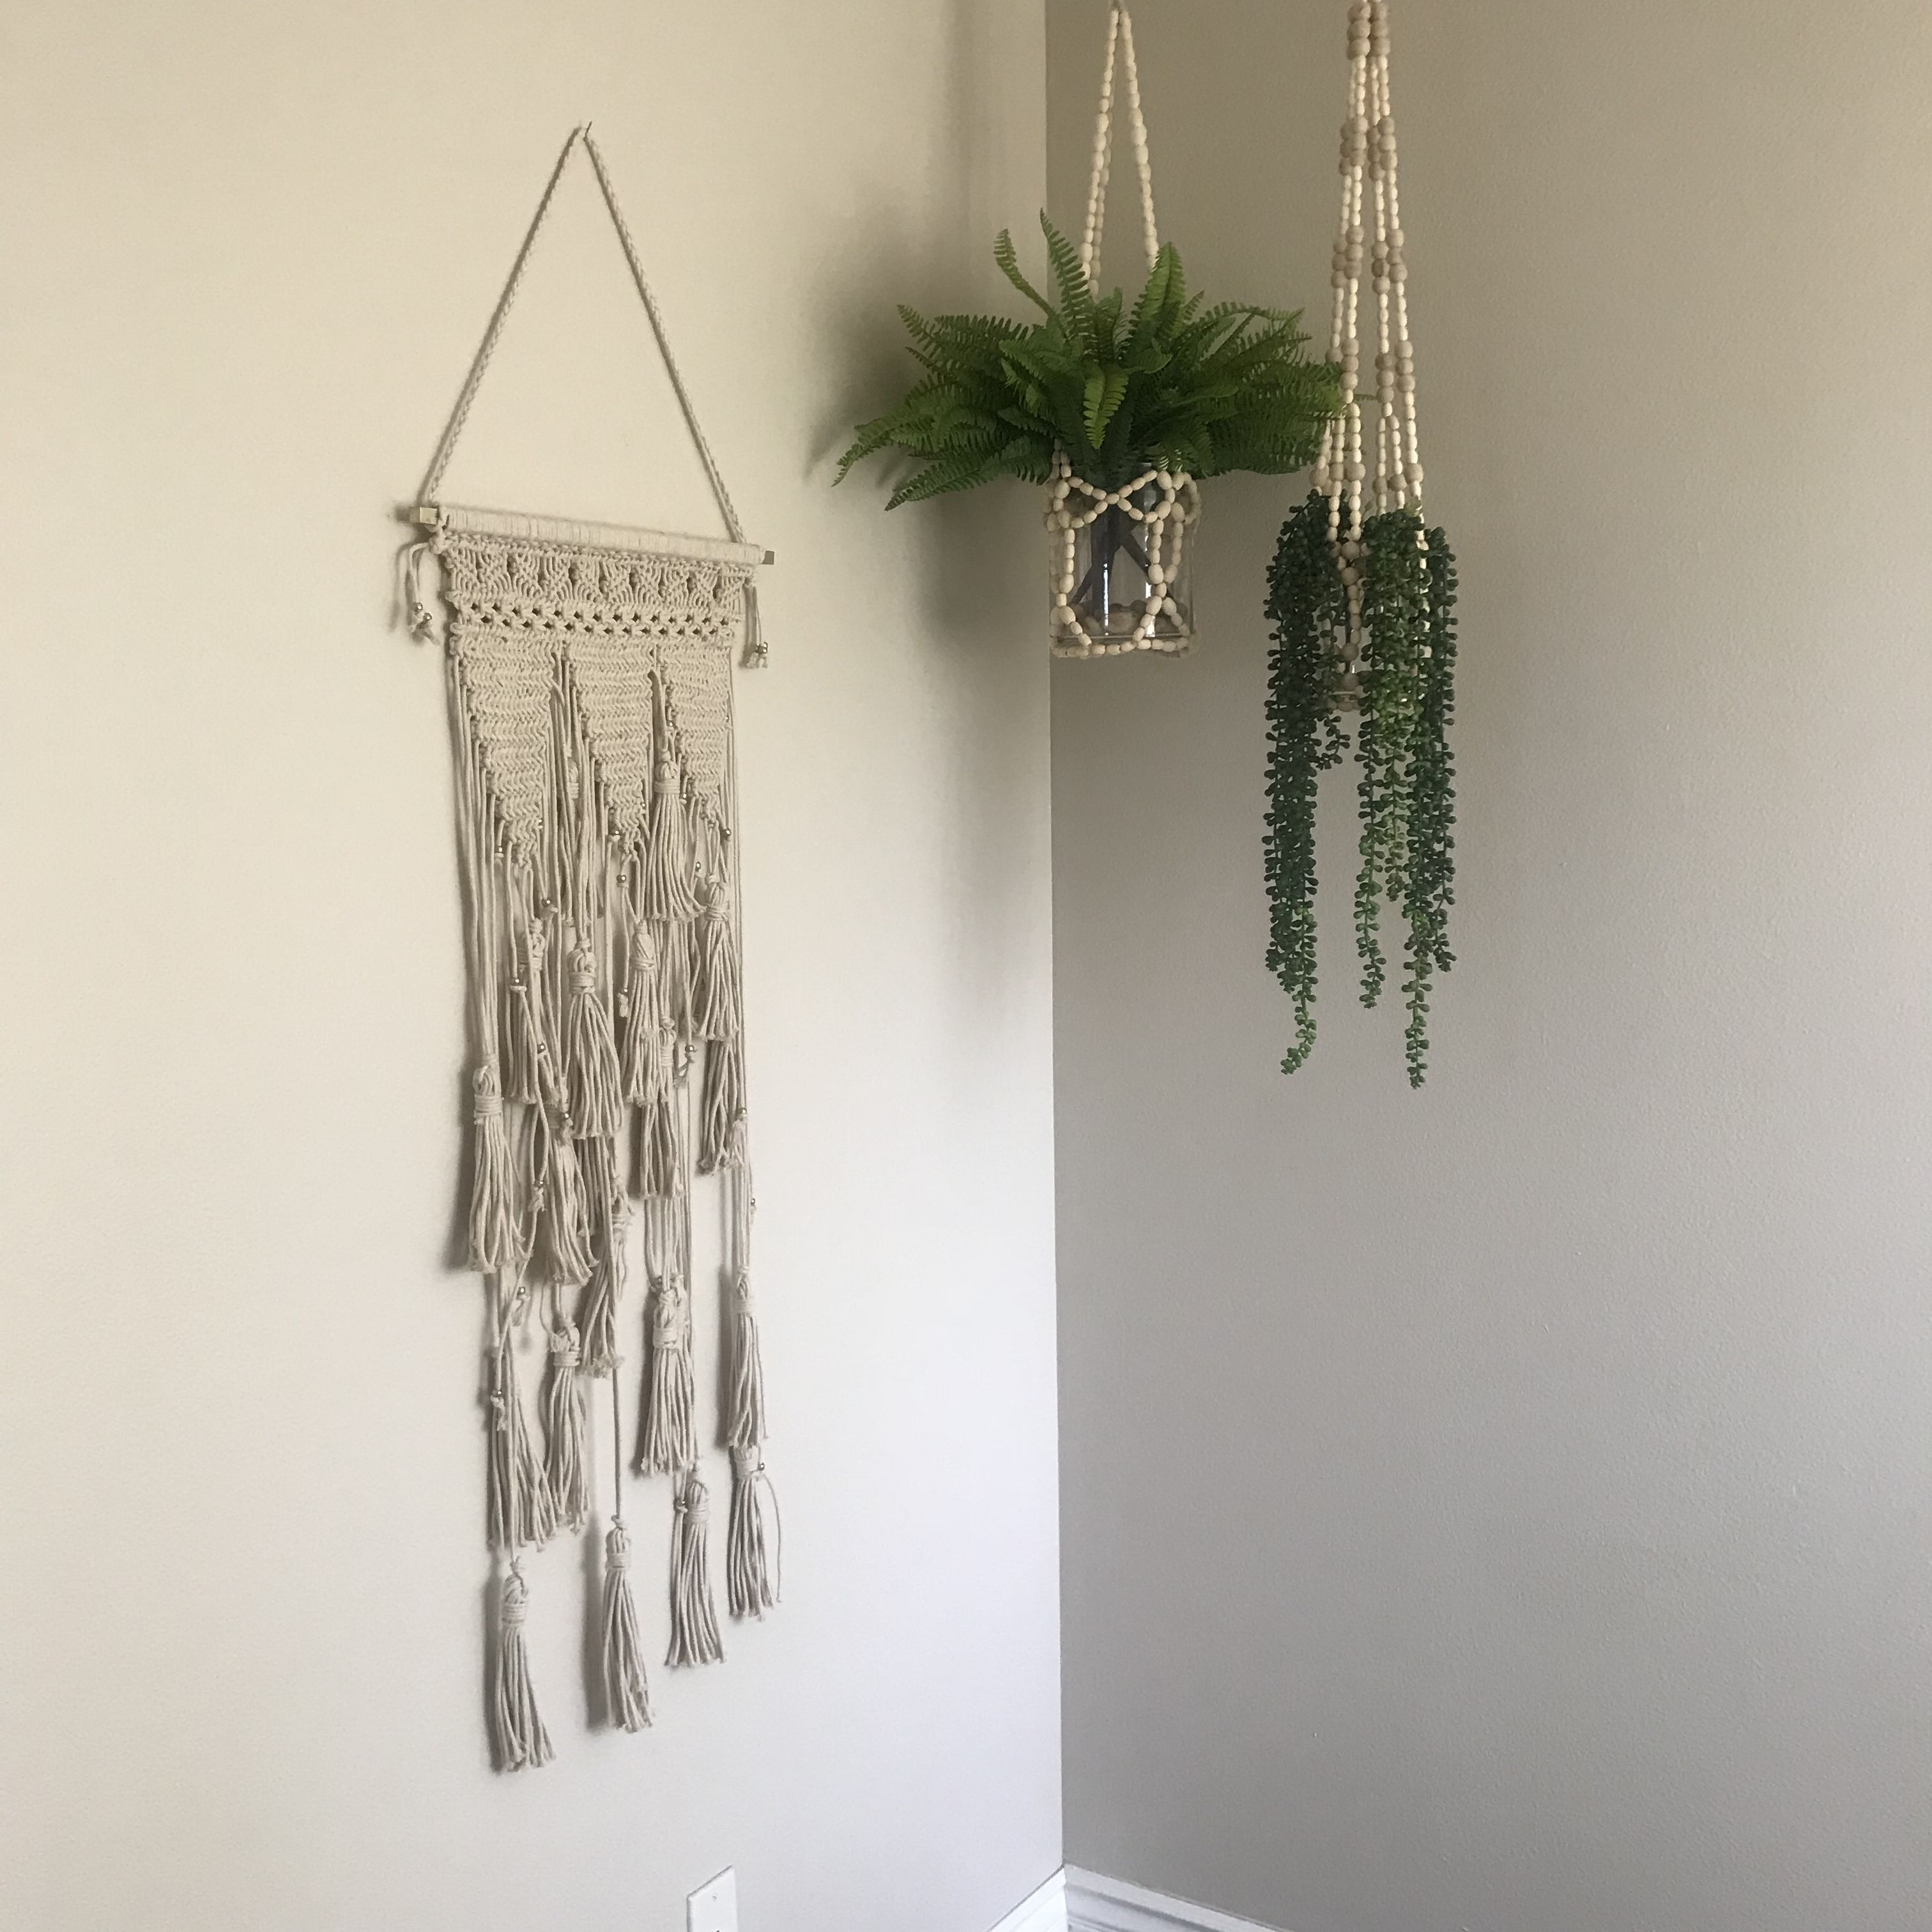 Living In A Small E It S Sometimes Hard To Visualize Where Put Plants Hangers Get Out Of That Hidden Away Corner